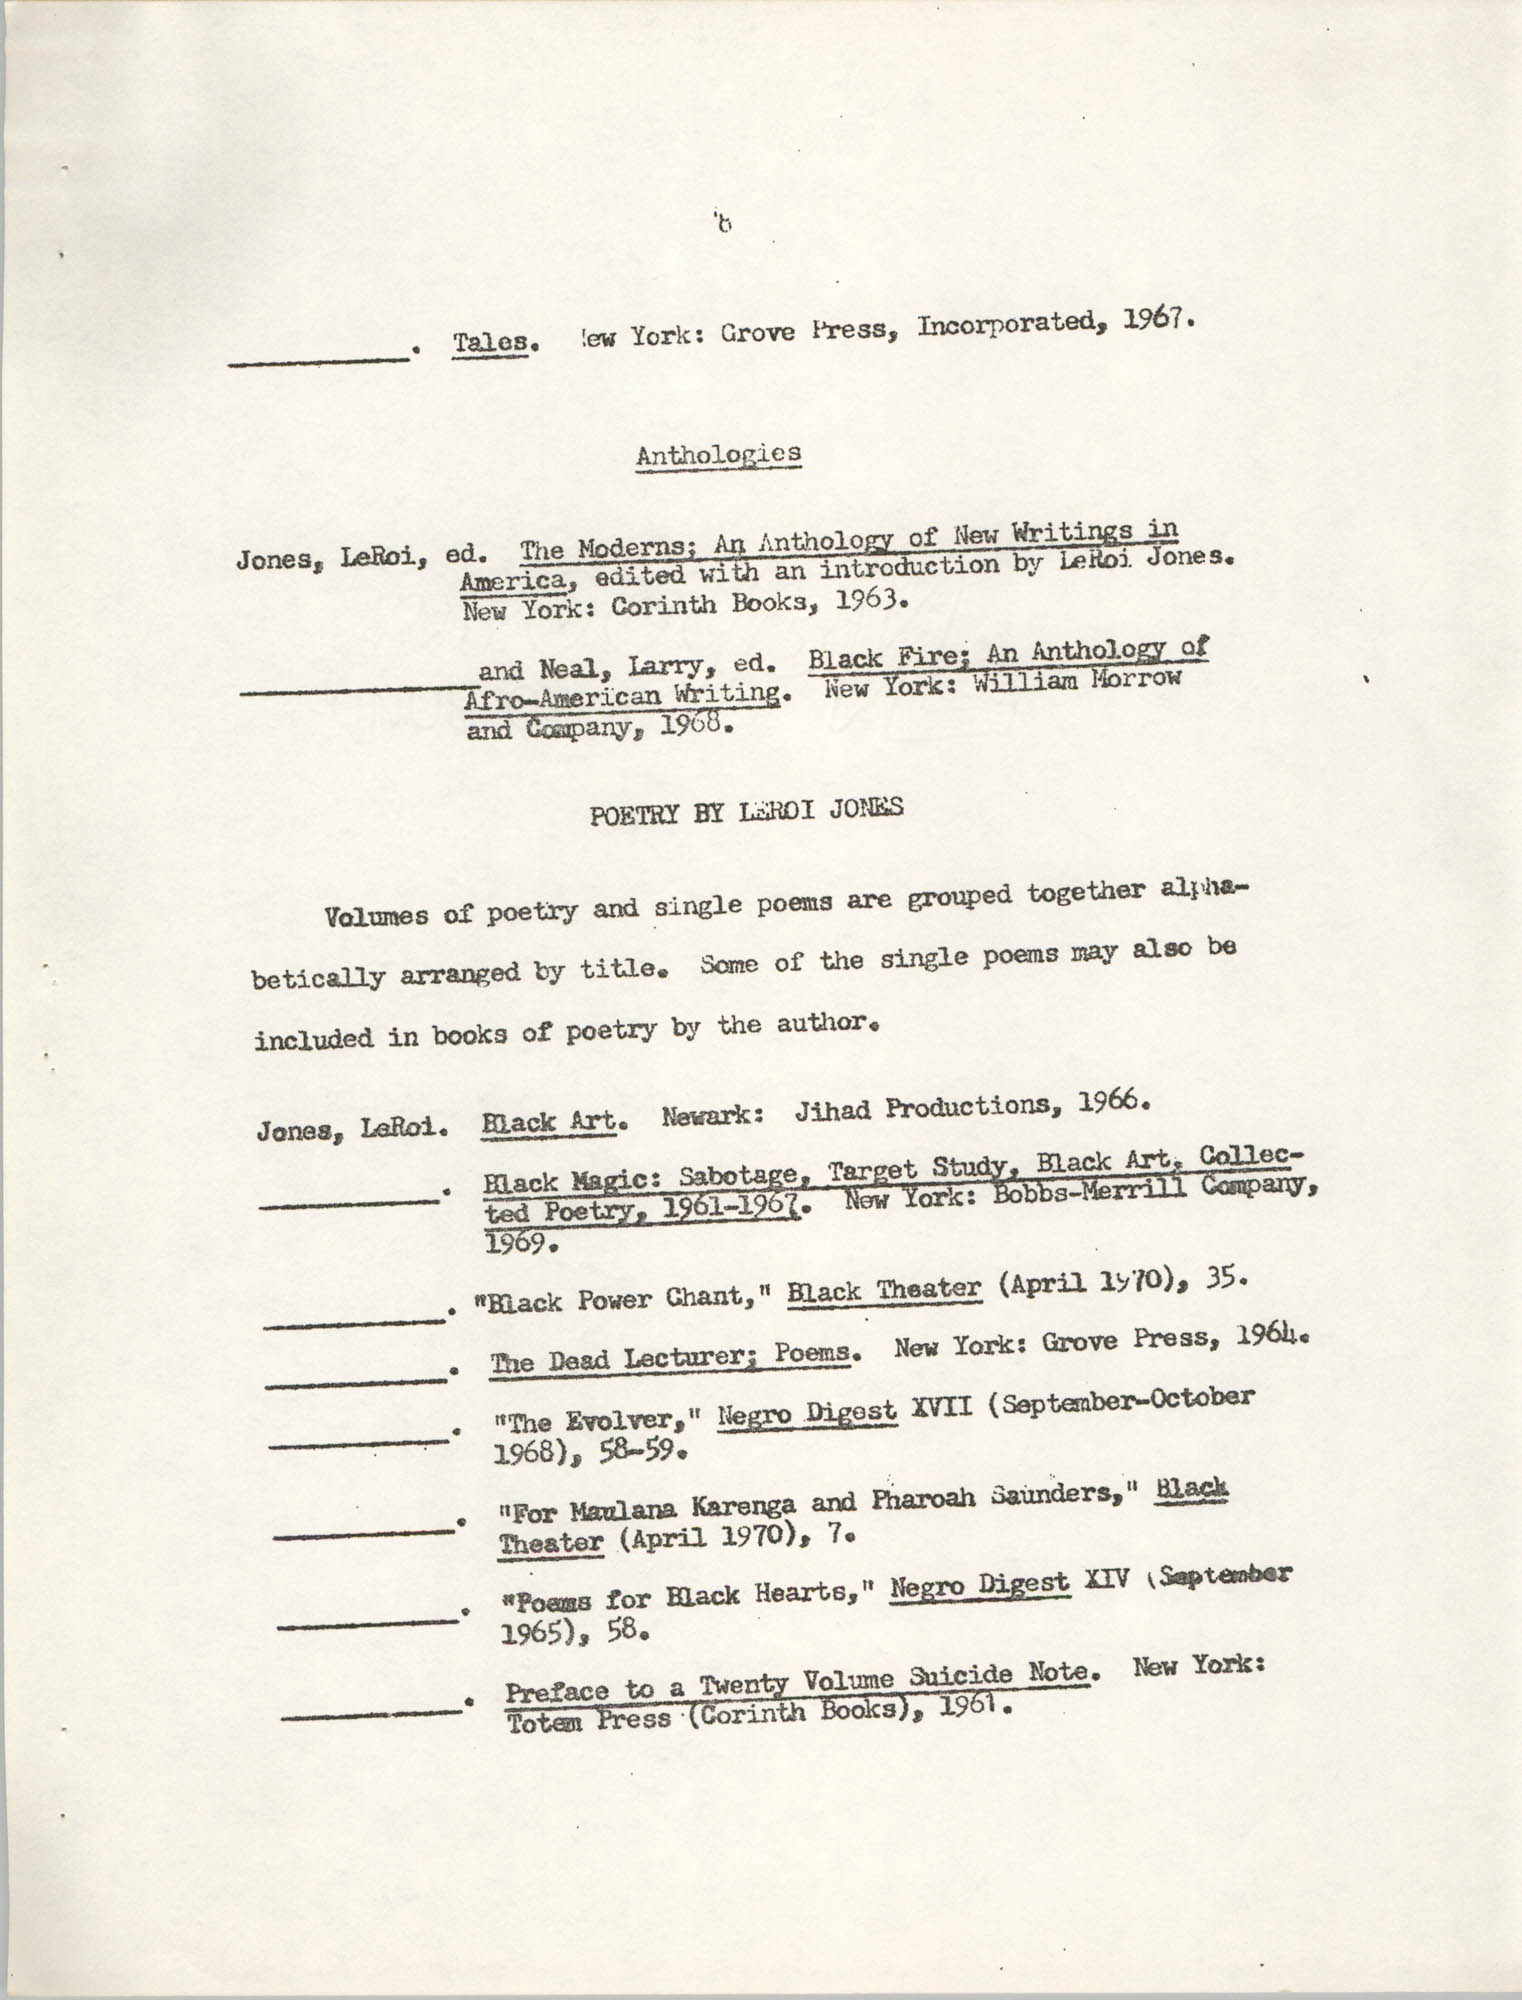 Center for African and African-American Studies Bibliography No. 2, Page 8